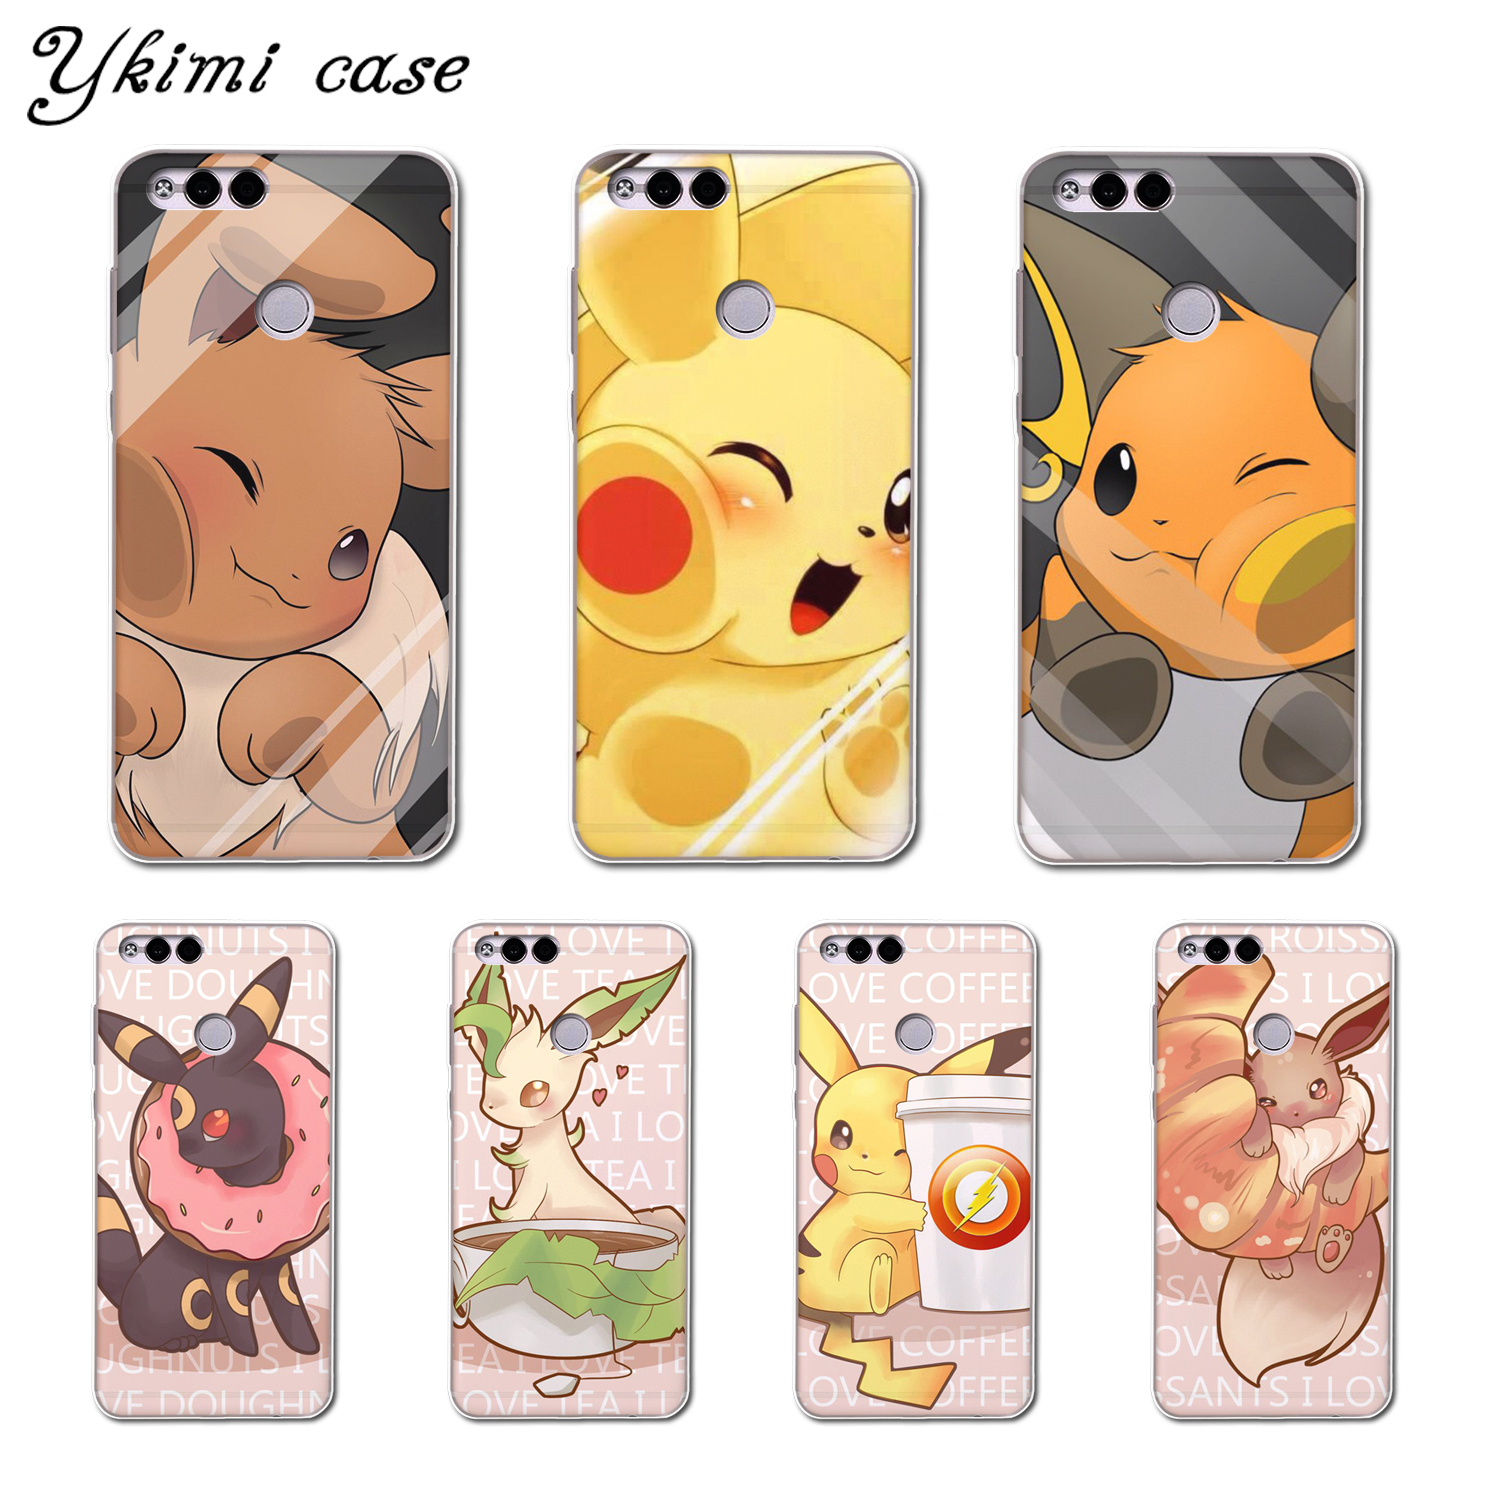 ykimi-case-font-b-pokemon-b-font-team-mystic-cover-for-huawei-honor-9-lite-10-9-7c-7a-7x-7a-pro-play-8-lite-8-8x-case-soft-silicone-tpu